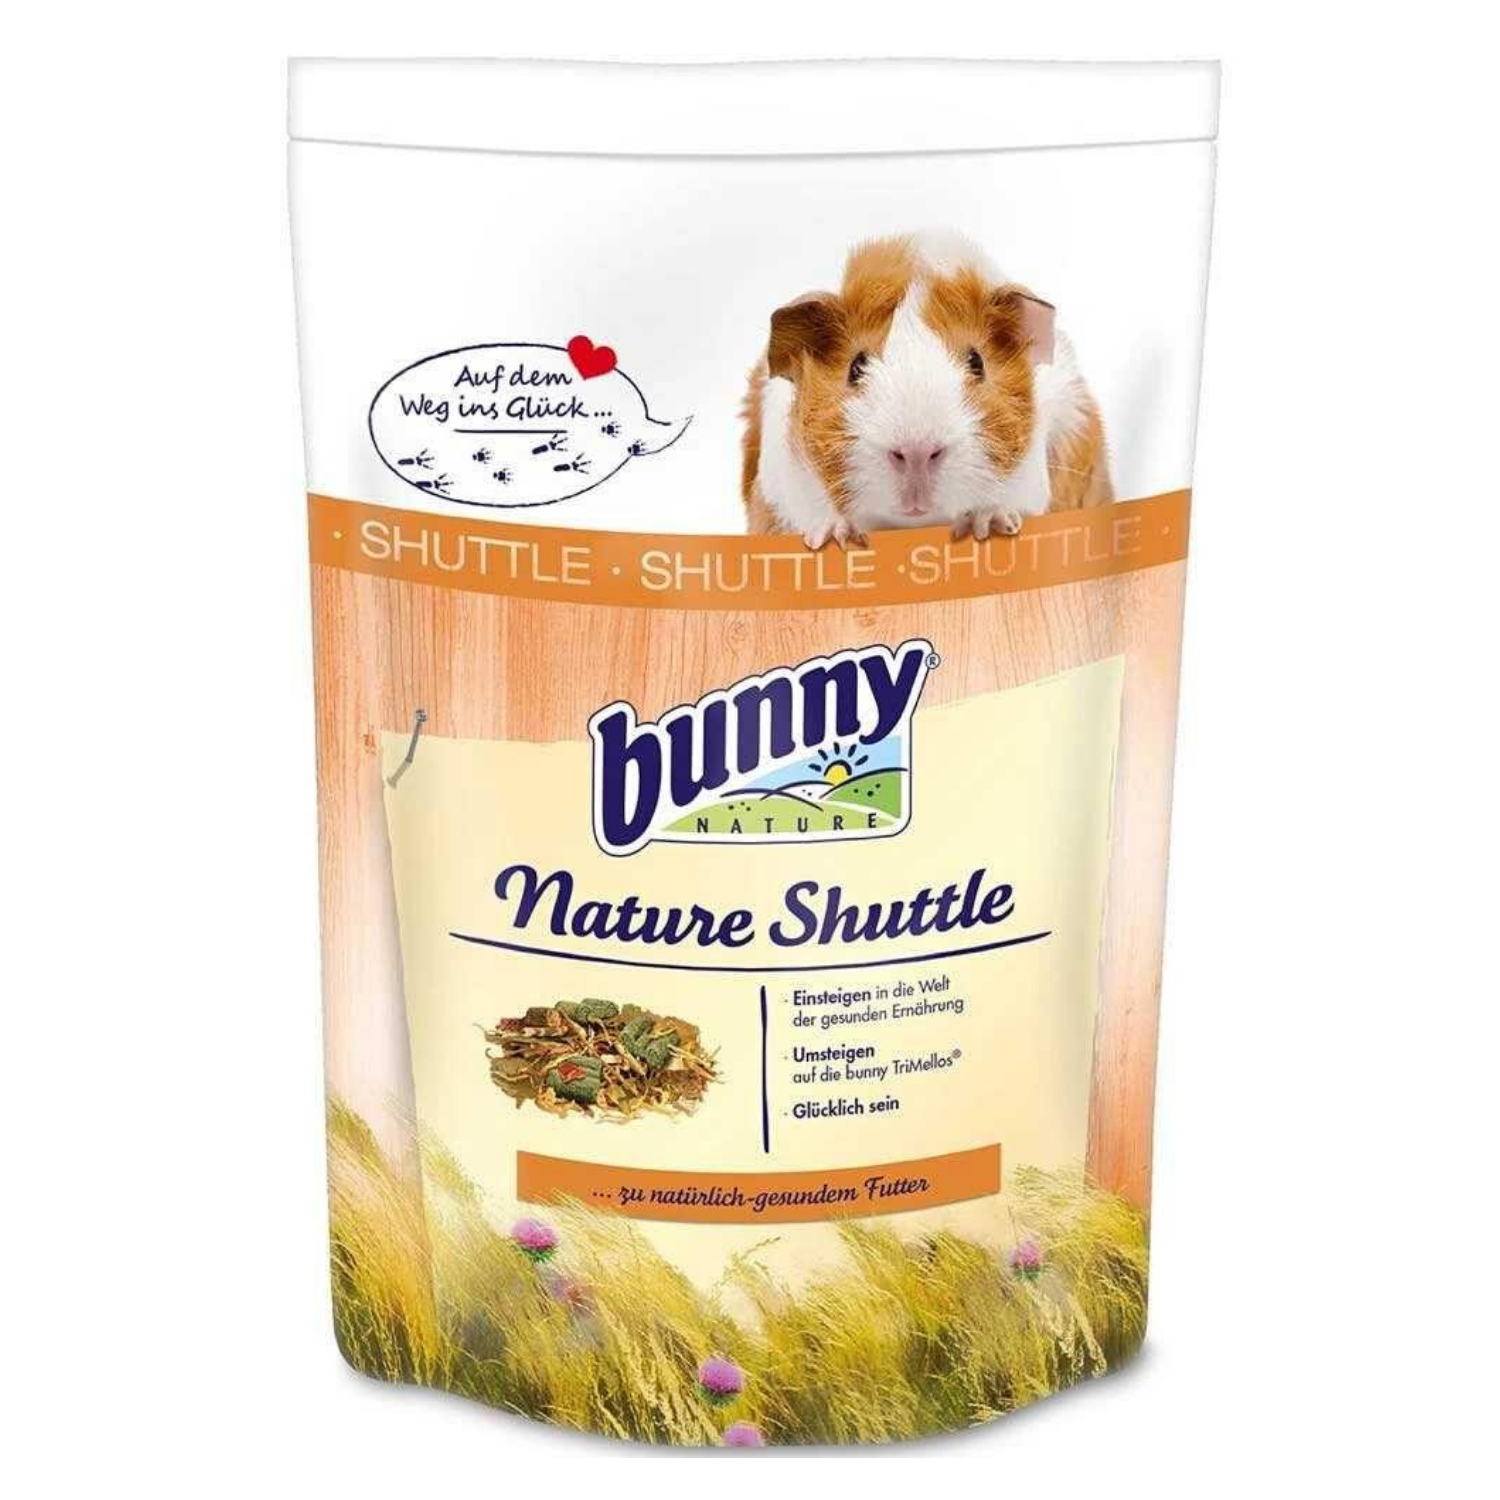 Bunny Nature Shuttle Guinea Pig - 600g